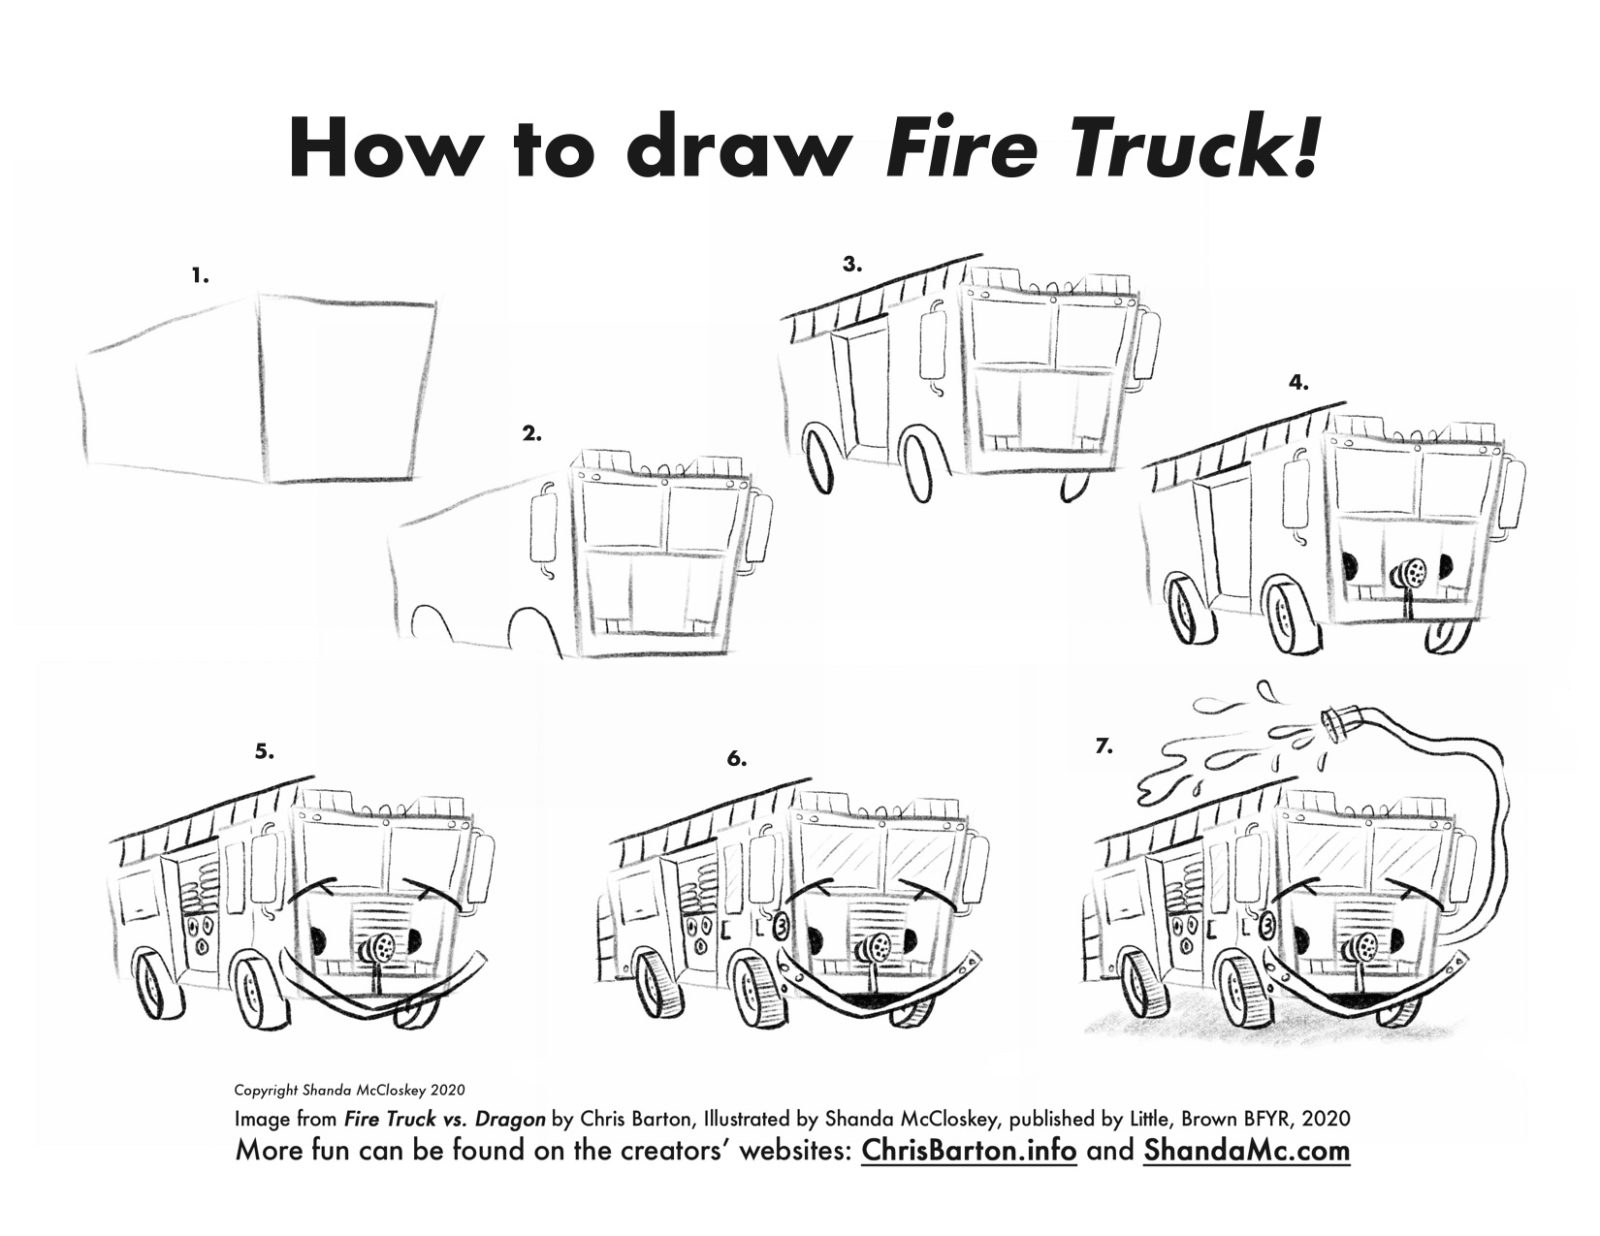 How-to-draw Fire Truck from the book Fire Truck vs. Dragon by Chris Barton, illustrated by Shanda McCloskey